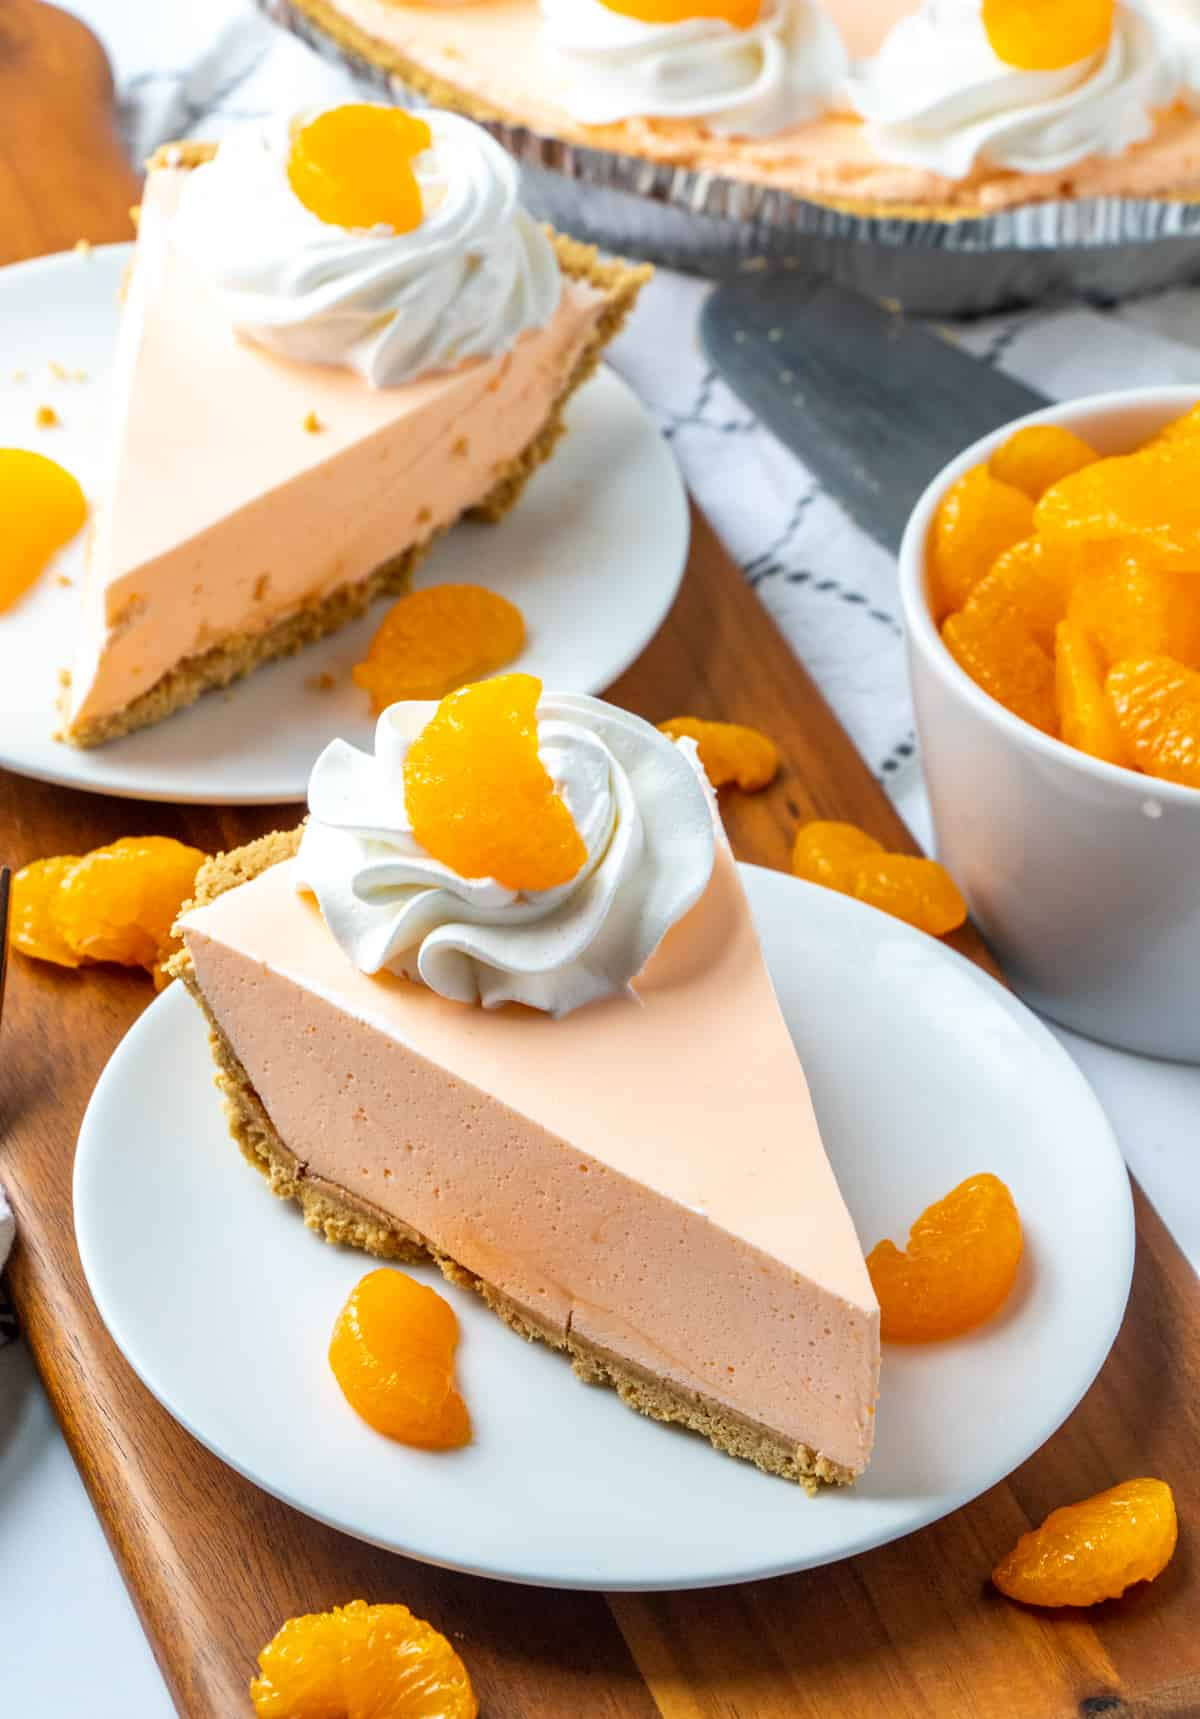 Two slices of pie on white plates topped with whipped cream and mandarin orange